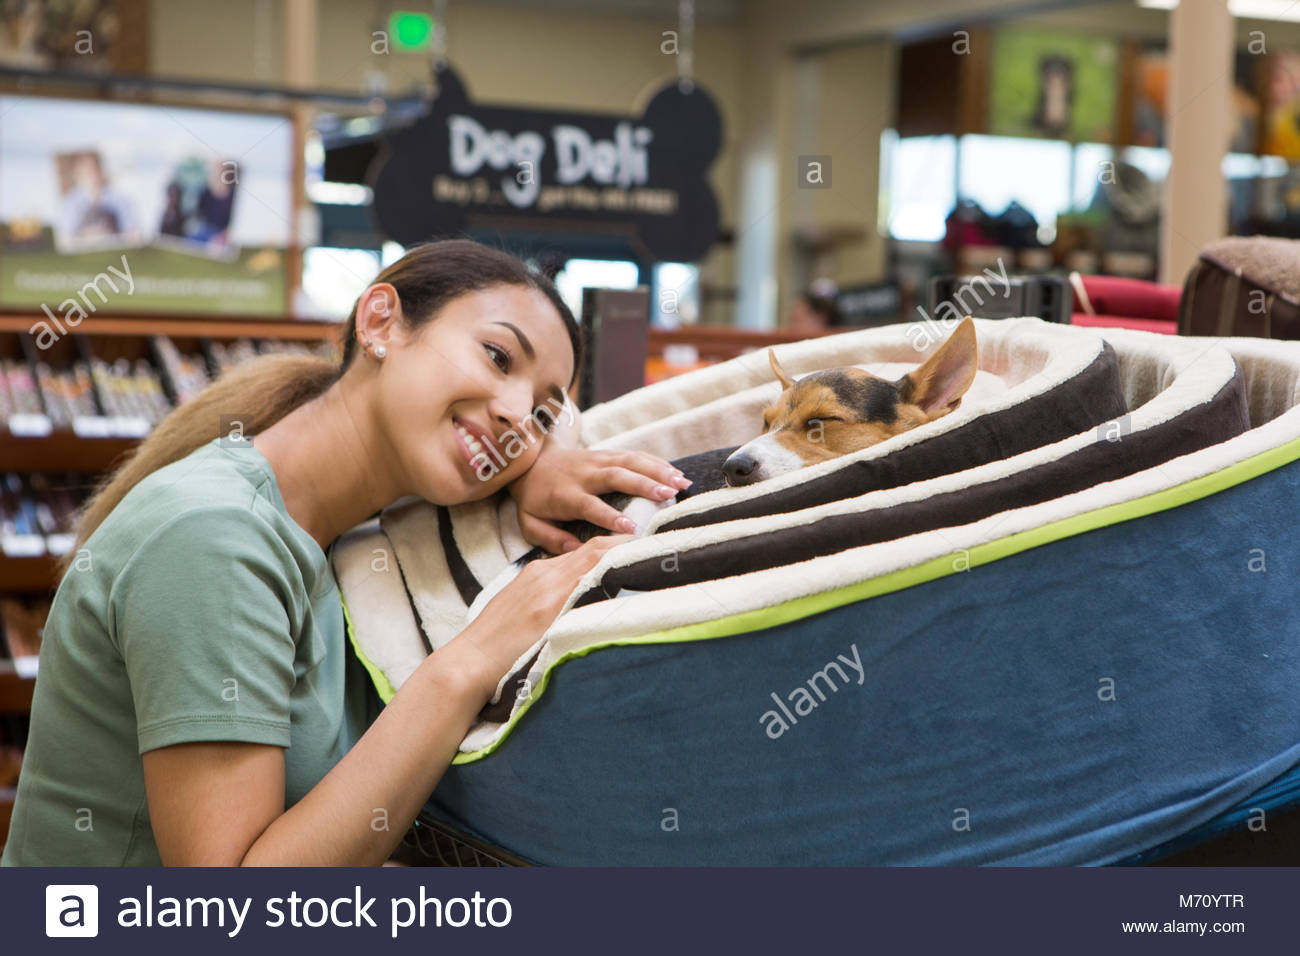 Young Asian woman resting head on dog bed next to a sleeping terrier dog in a pet store - Stock Image